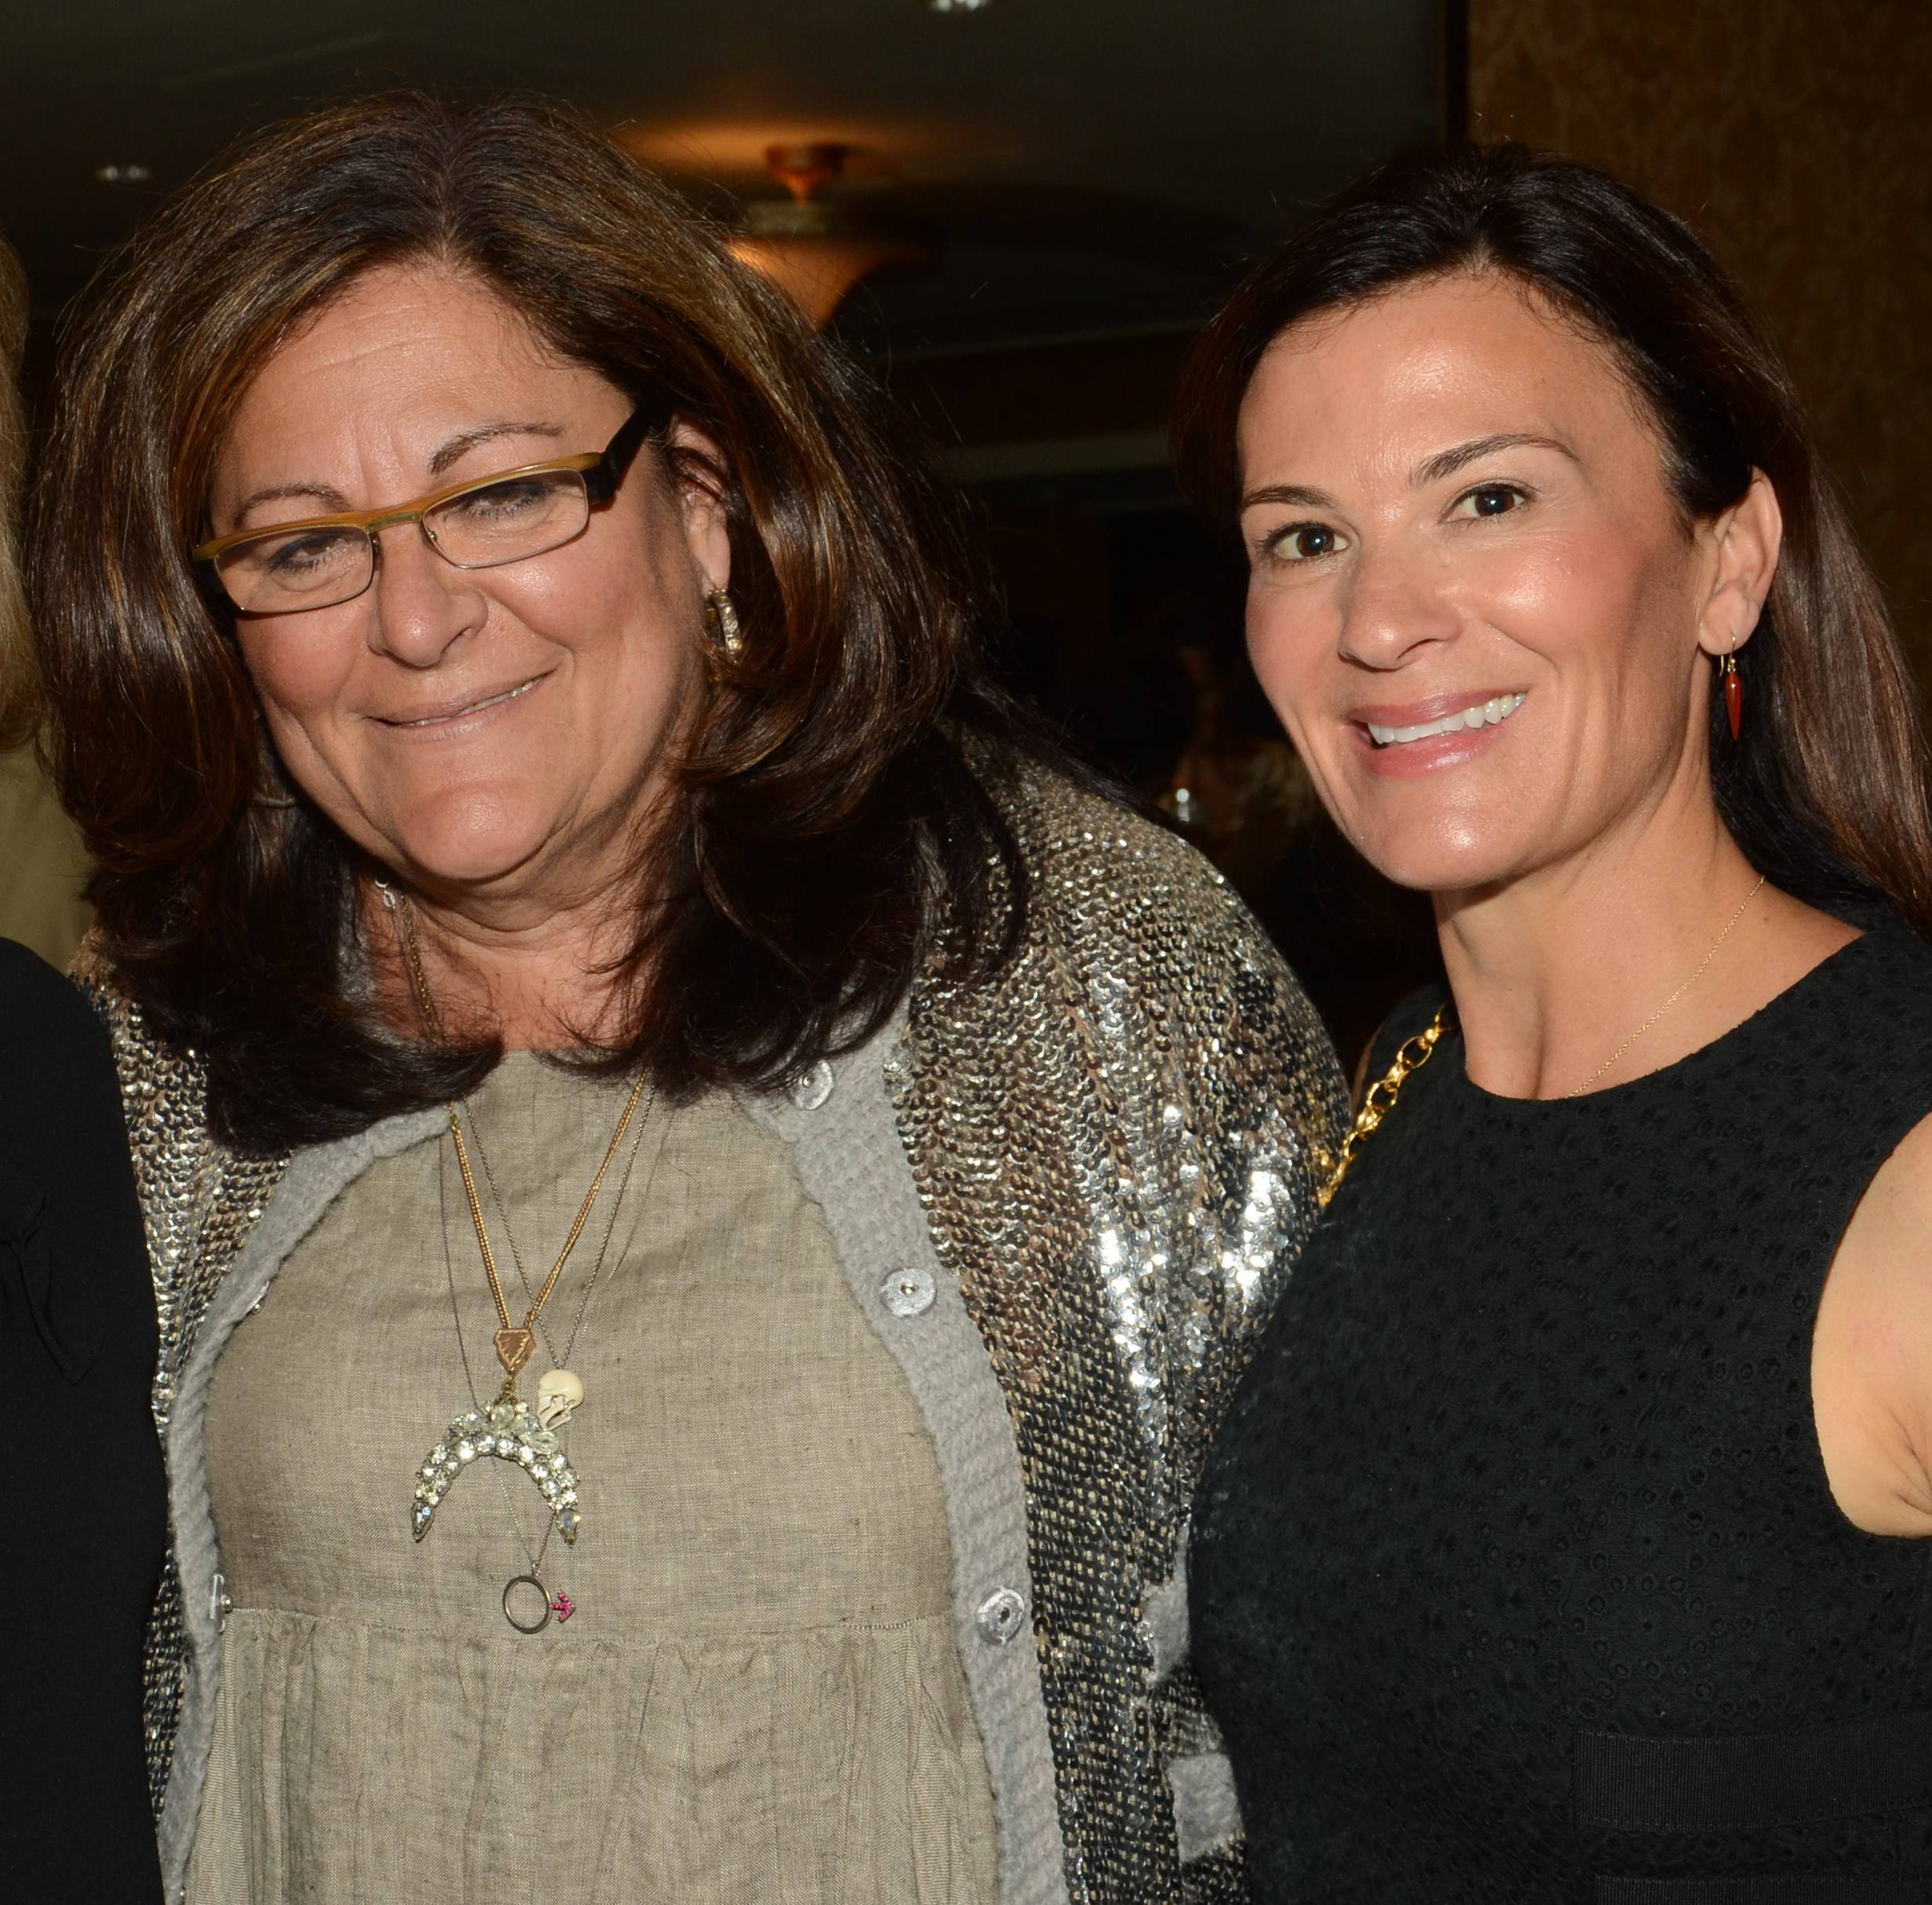 Fern Mallis and Sarah Harrelson (Ultratravel U.S. Editor in Chief) Attend the U.S. Launch of Ultratravel at the NoMad Hotel